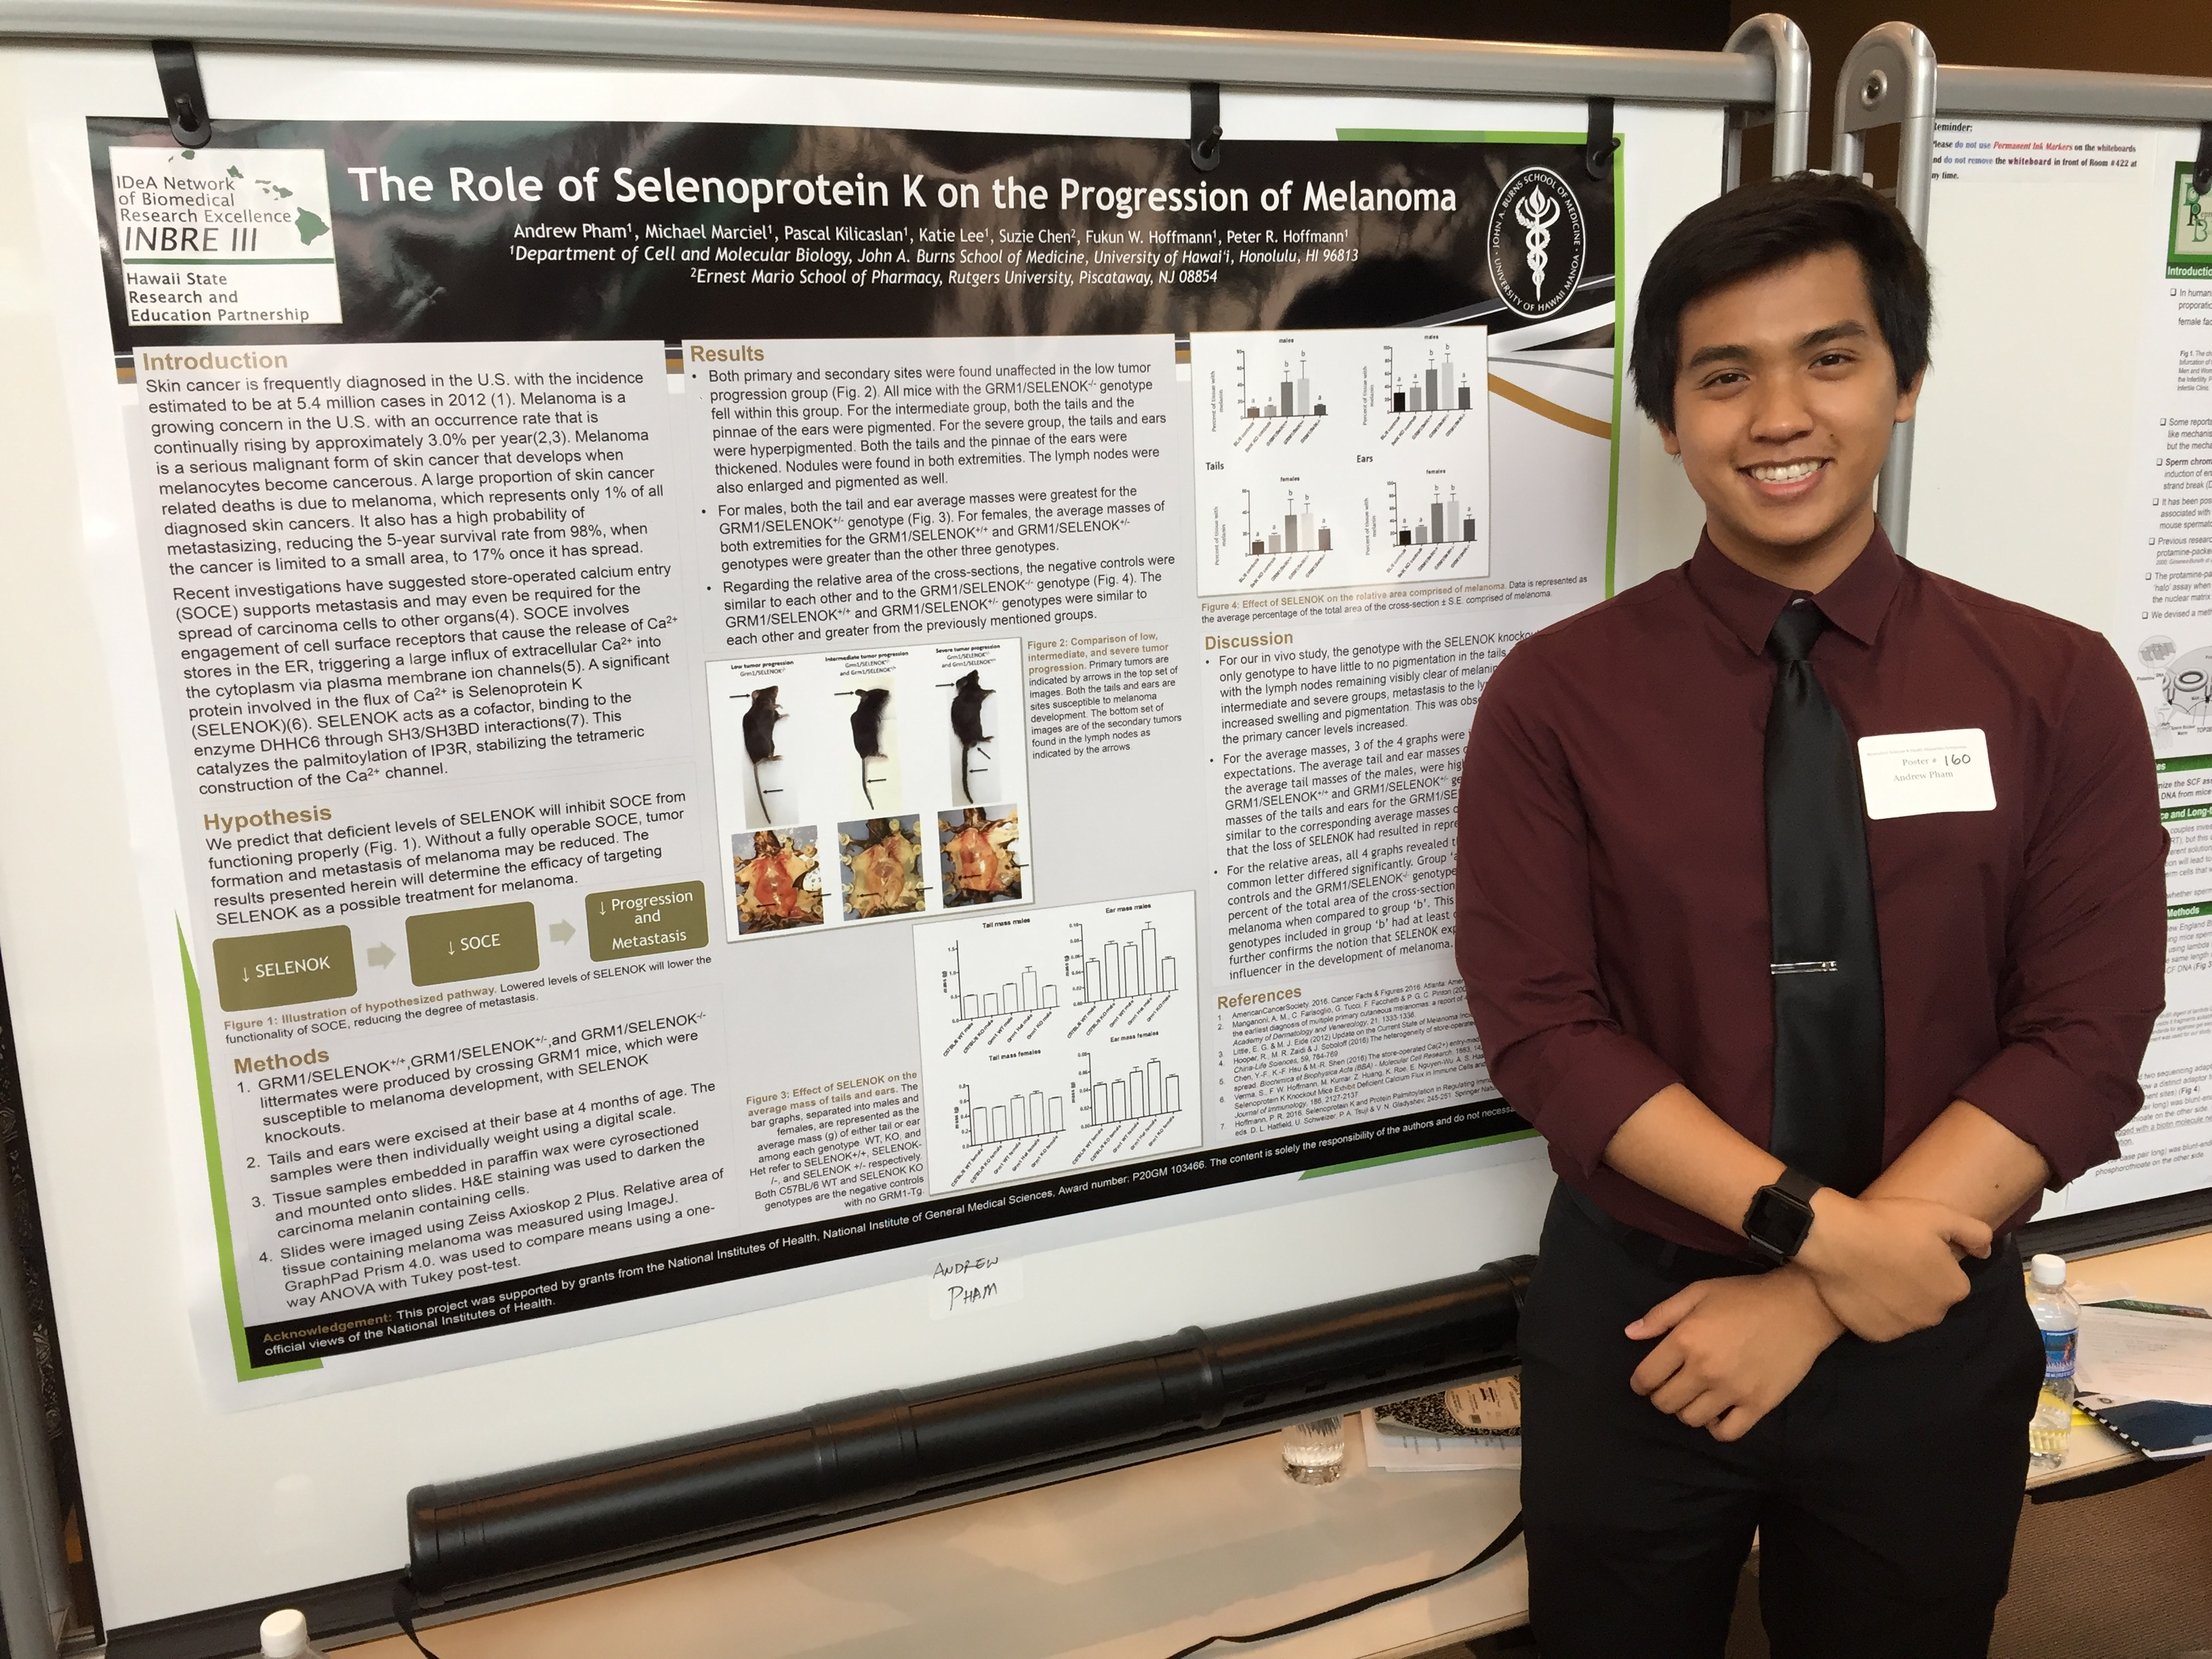 INBRE SRE Student, Andrew Pham, at the Undergraduate Poster Session